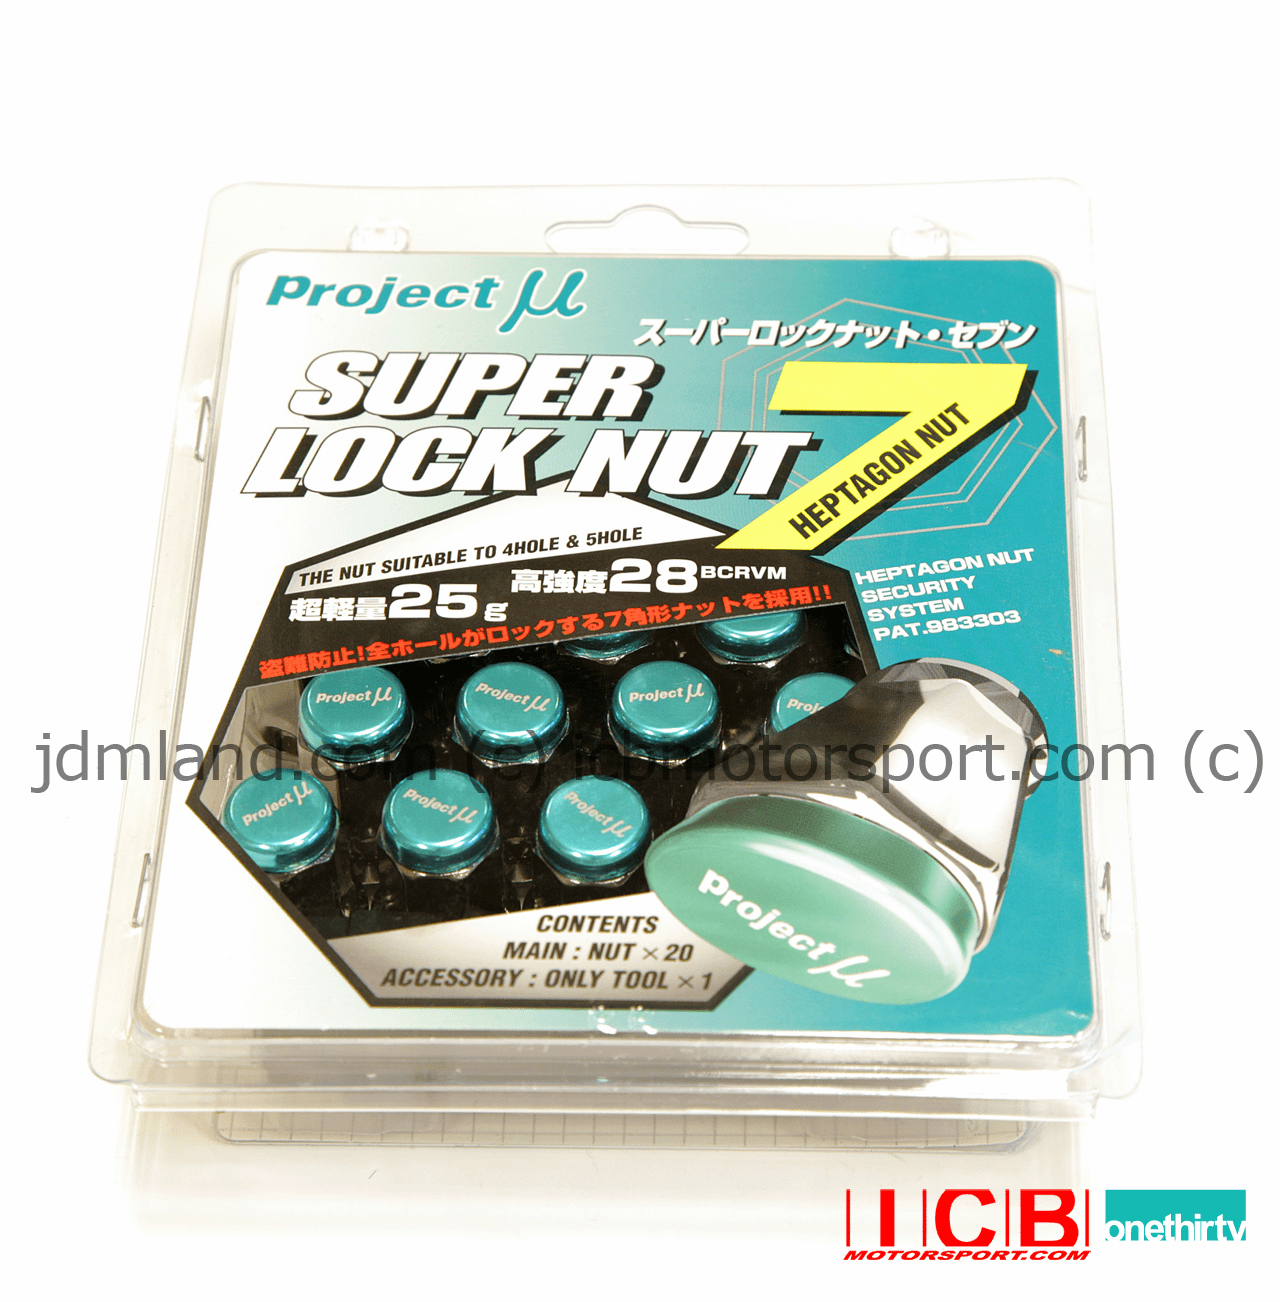 ProjectMu LN-P150M Teal Heptagon Super Lug Nut 7 M12�1.50mm LN-P150M